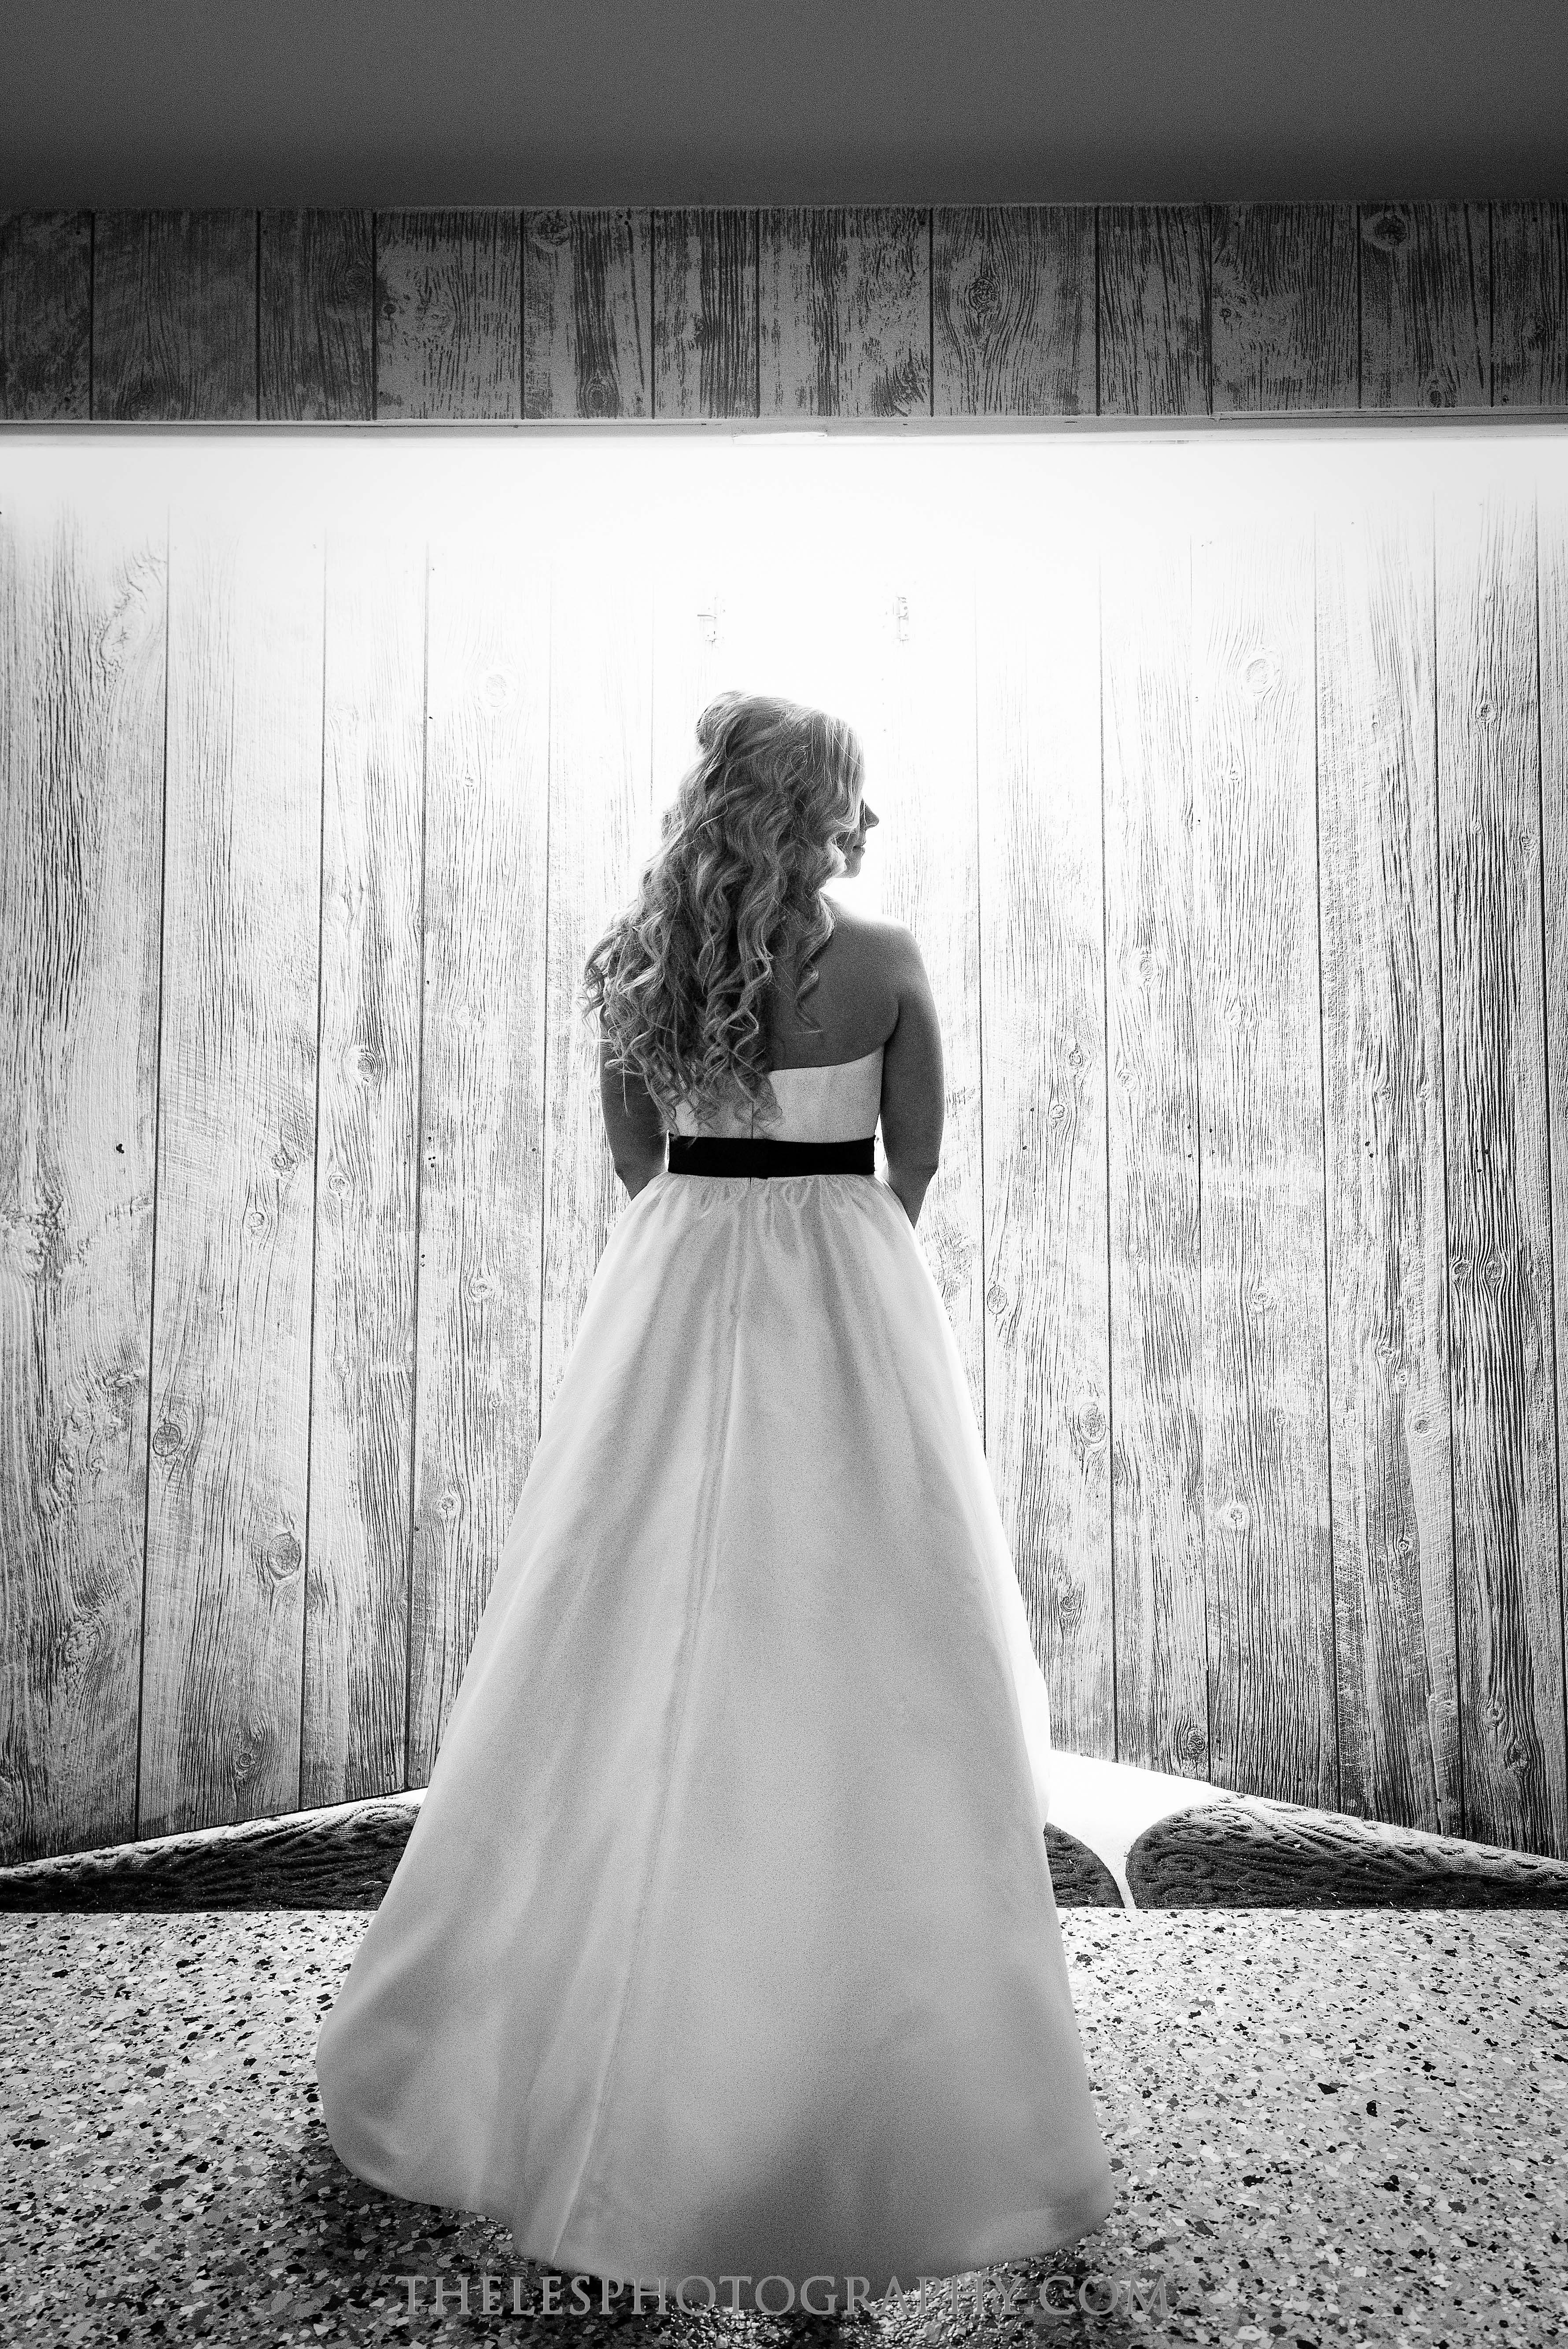 025 Dallas Wedding Photography - Photographer - The Les Photography - Fort Country Memories Wedding